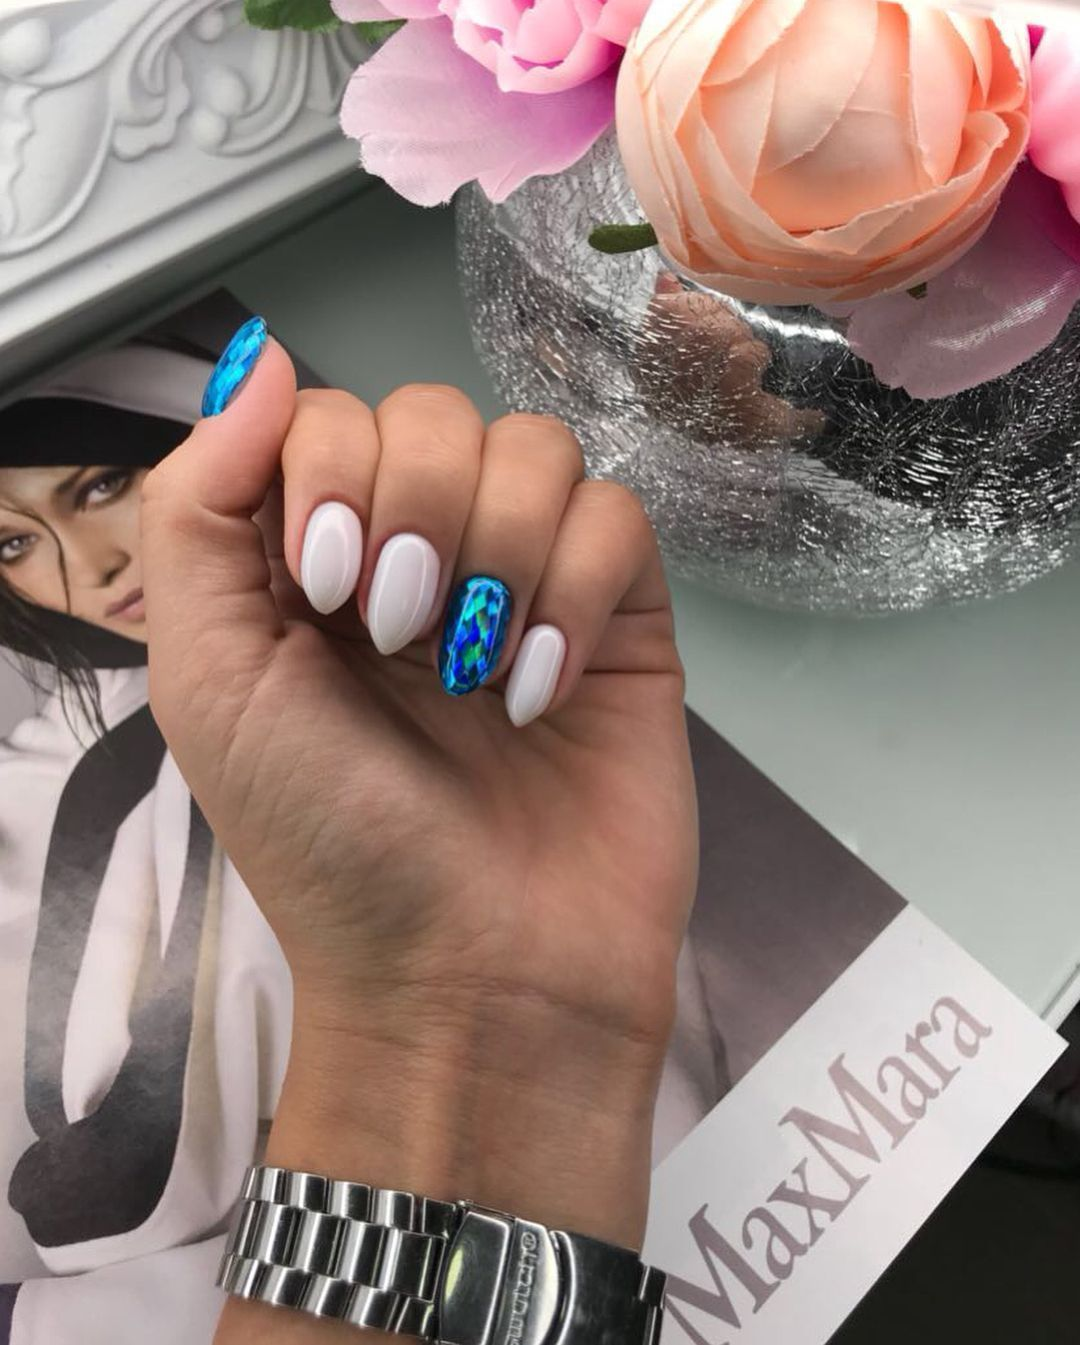 Full Nail Technician Course In London Sign Up For Classes At The L Ecole De Beaute School In 2020 Blue Nails Gel Nails Toe Nail Color